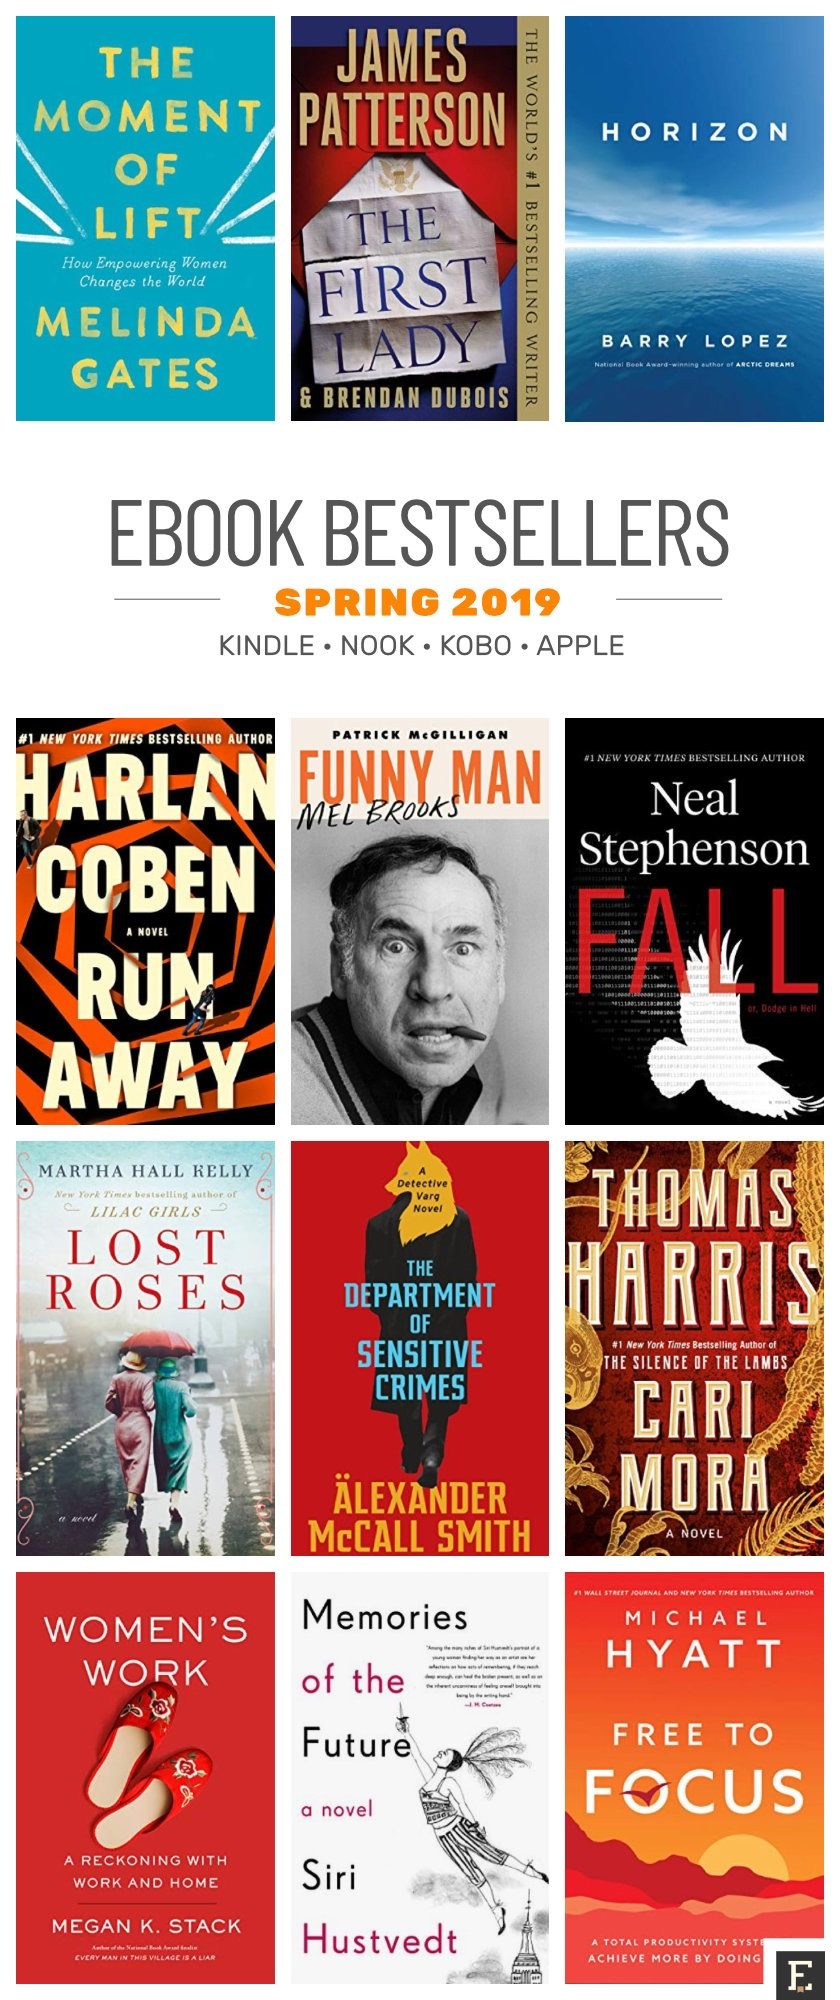 Most anticipated books of spring 2019 - infographic